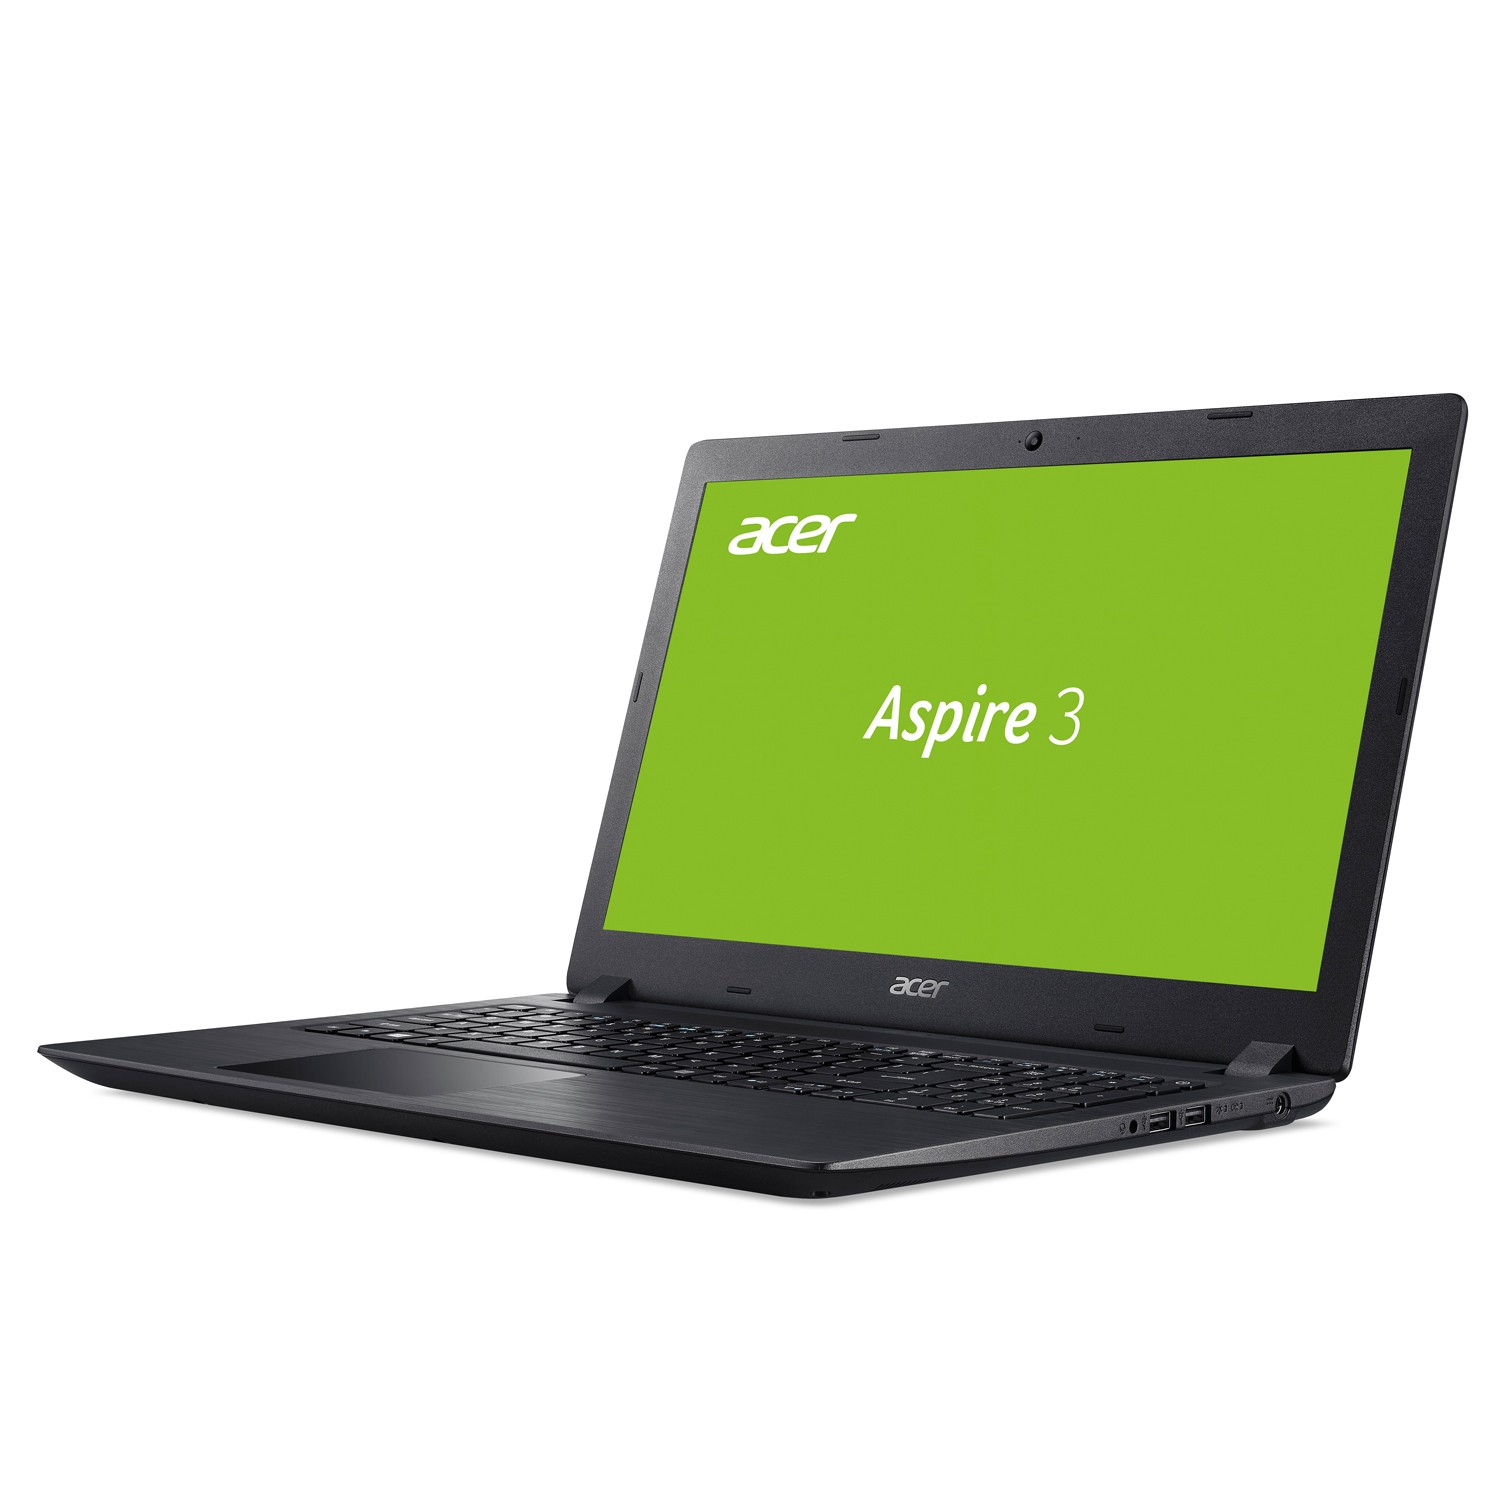 BRAND NEW ACER A3, CORE i3, 1TB HDD, 8G MEM, LAPTOP FOR R4800(WORTH R9000)